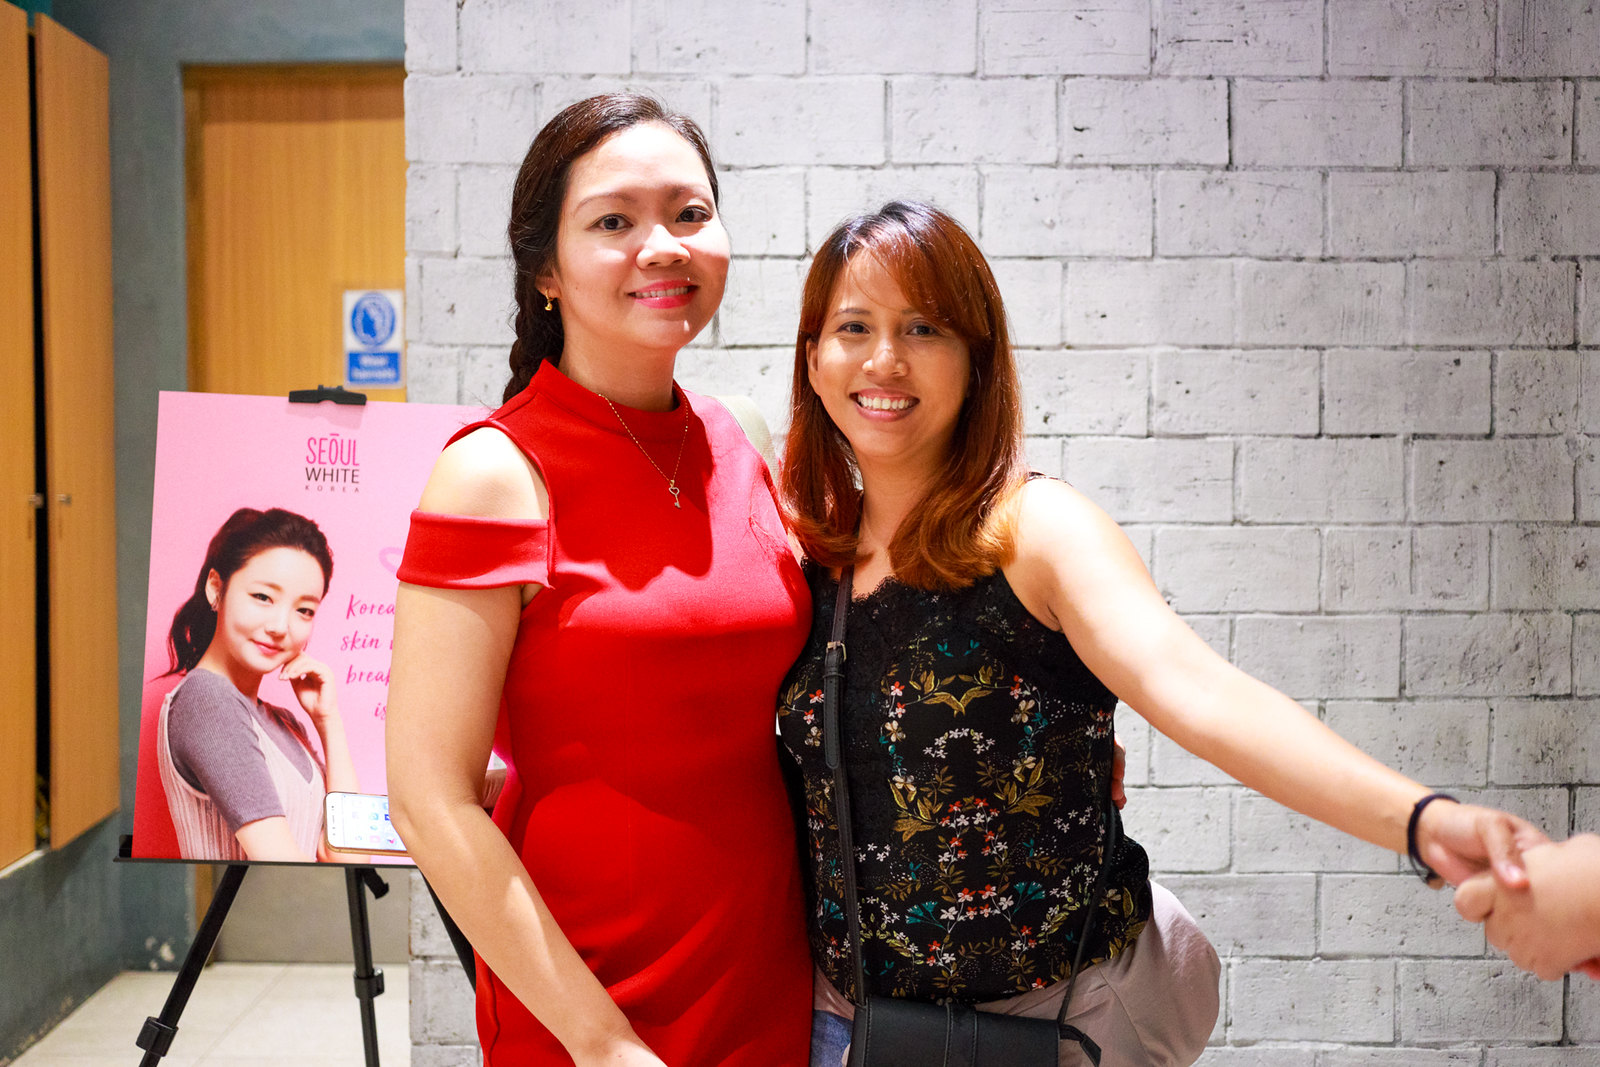 With blogger Earth of Earthlingorgeous